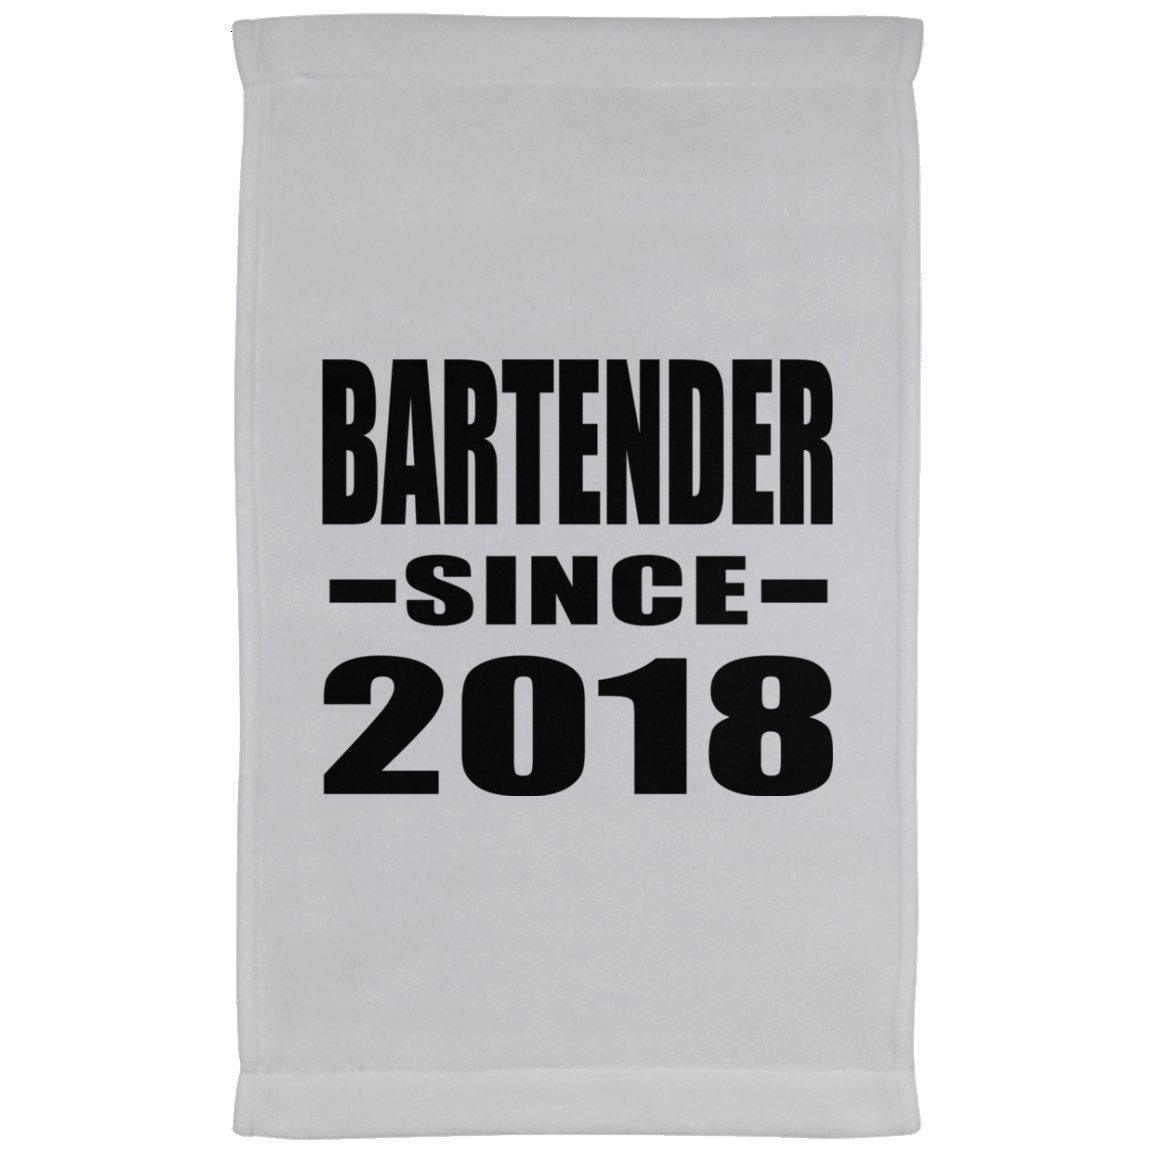 Designsify Bartender Since 2018 - Kitchen Towel, Microfiber Velour Towel, Best Gift for Birthday, Wedding Anniversary, New Year, Valentine's Day, Easter, Mother's/Father's Day